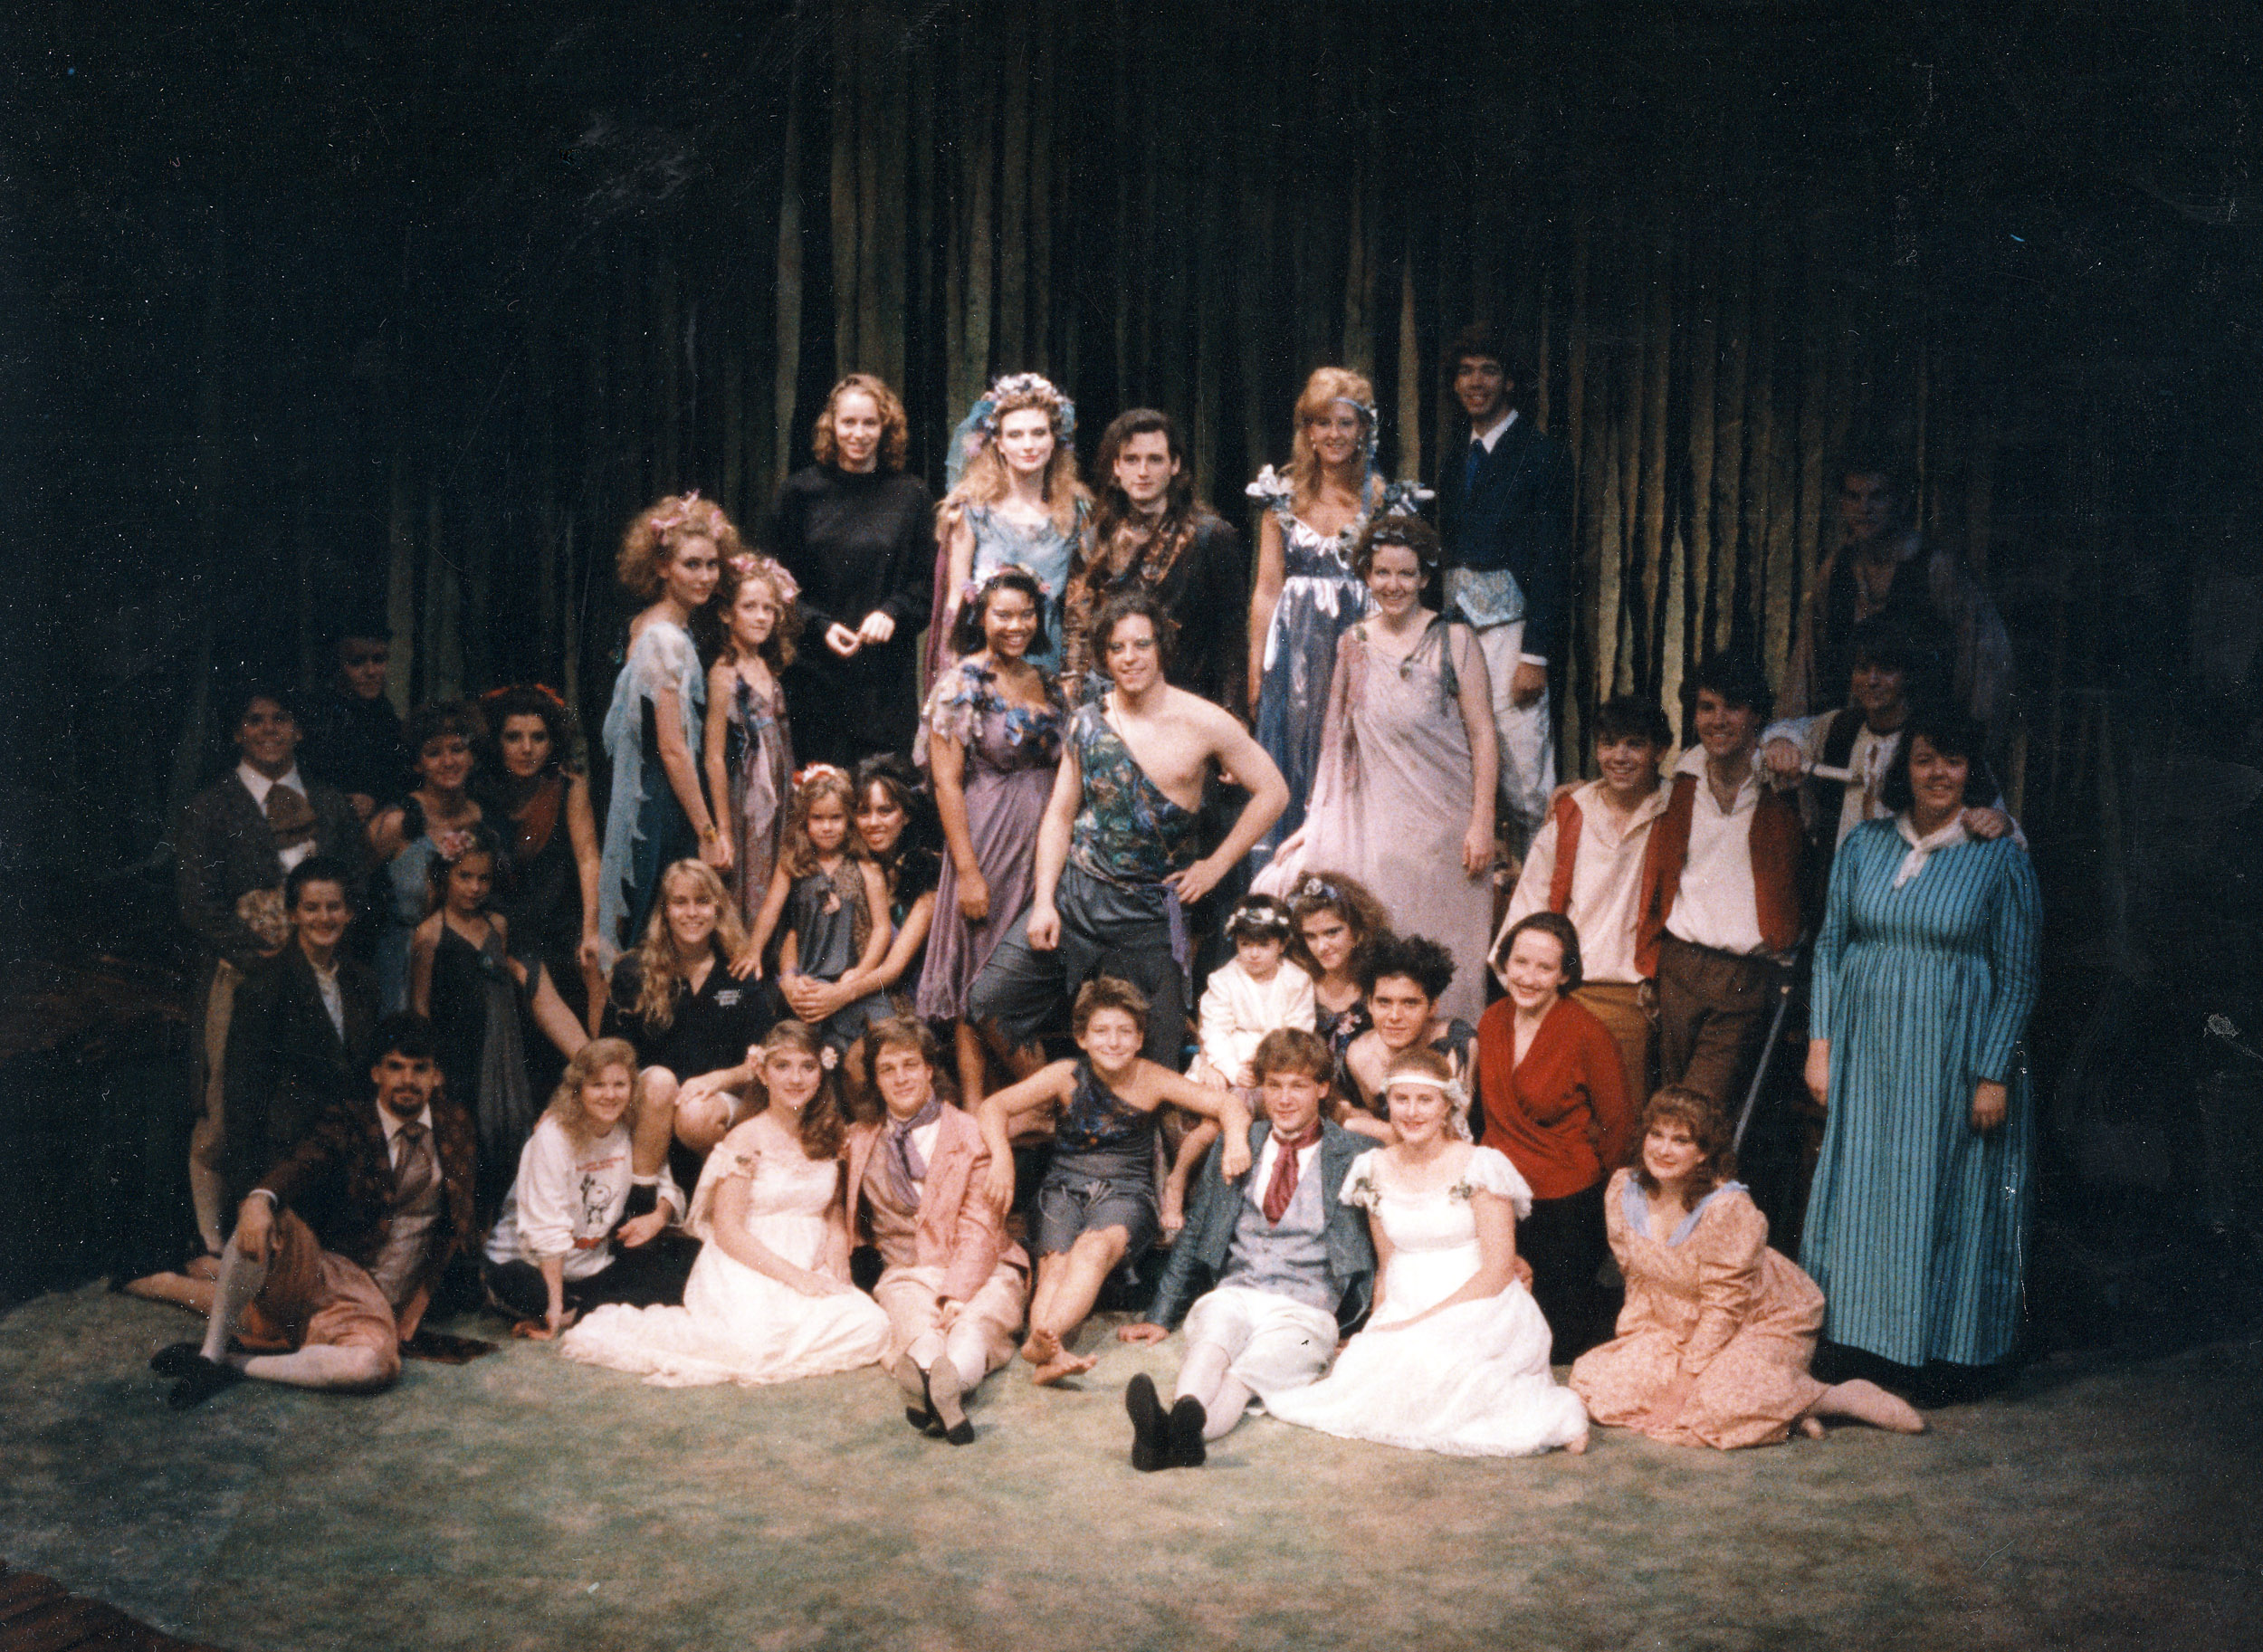 Rhodes College Digital Archives - DLynx: The Cast of A ...